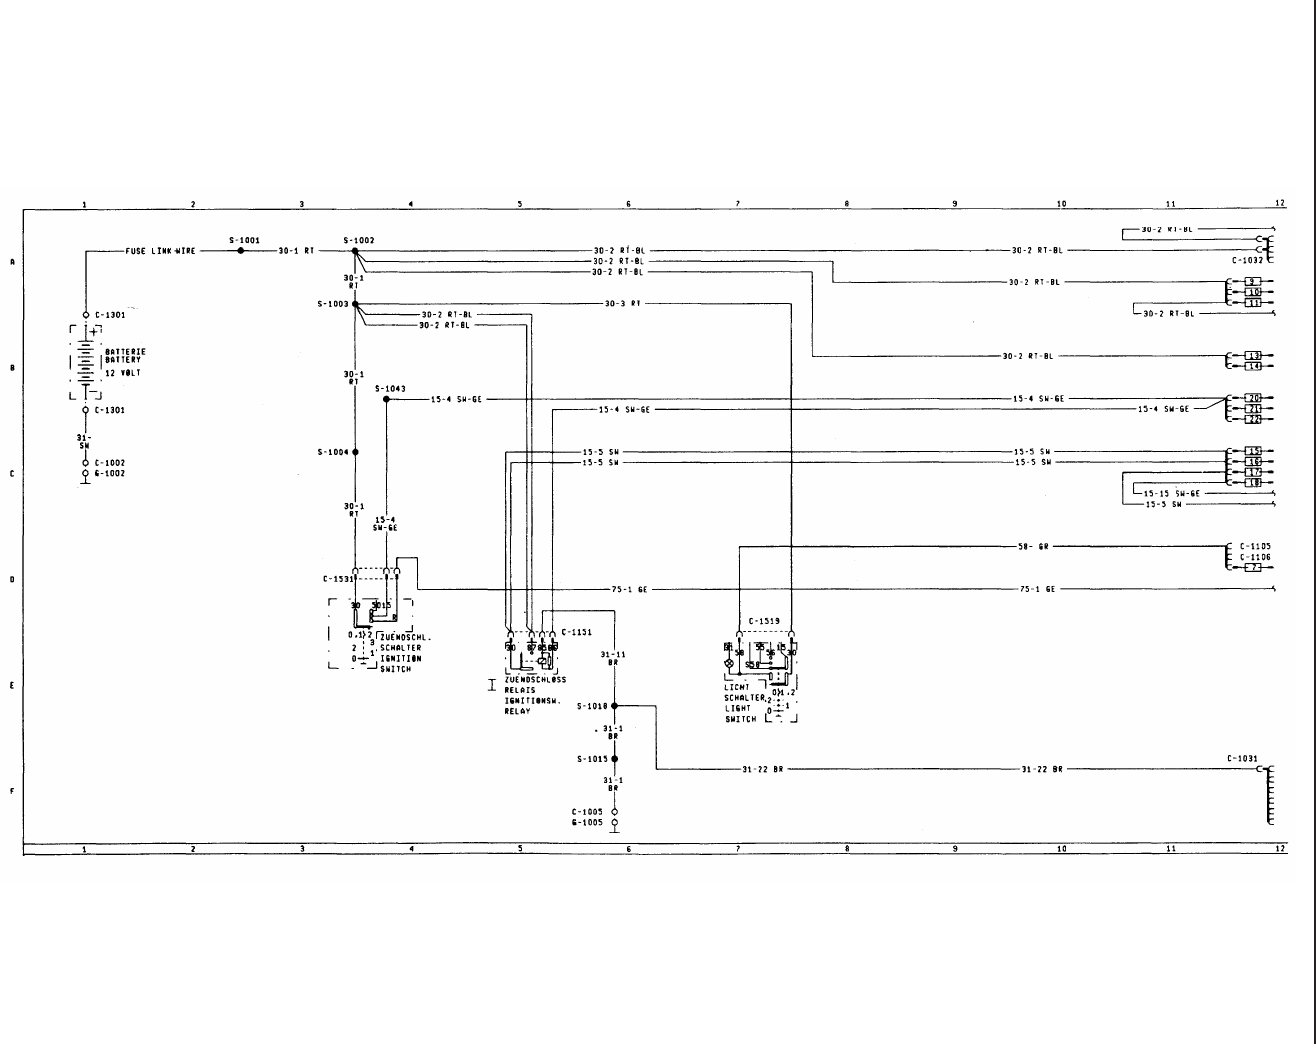 WD?2 Wiring diagrams. Diagram 2. Power distribution. Ford Scorpio